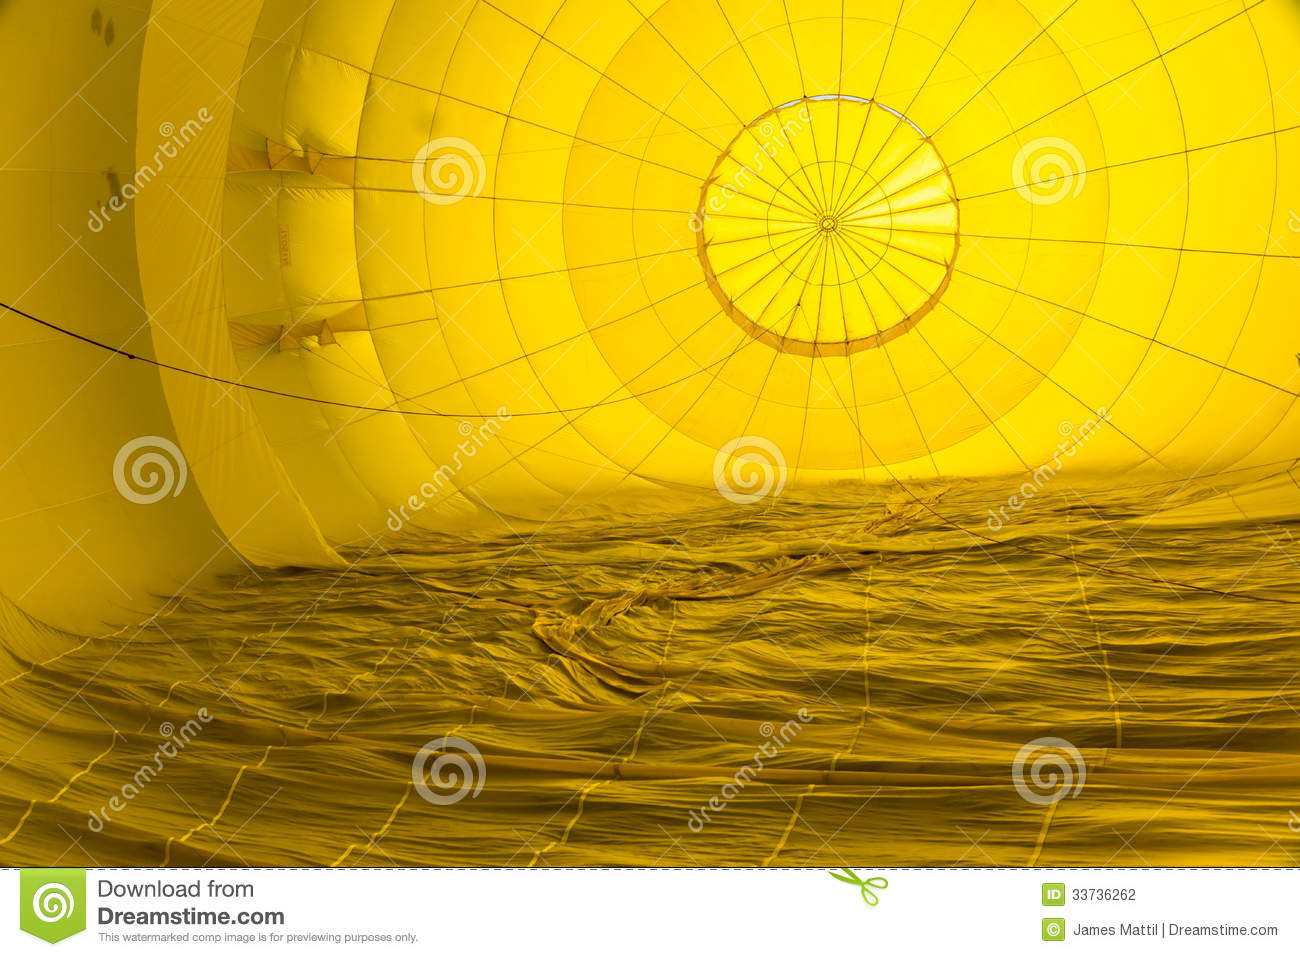 Abstract Patterns Inside a Hot Air Balloon